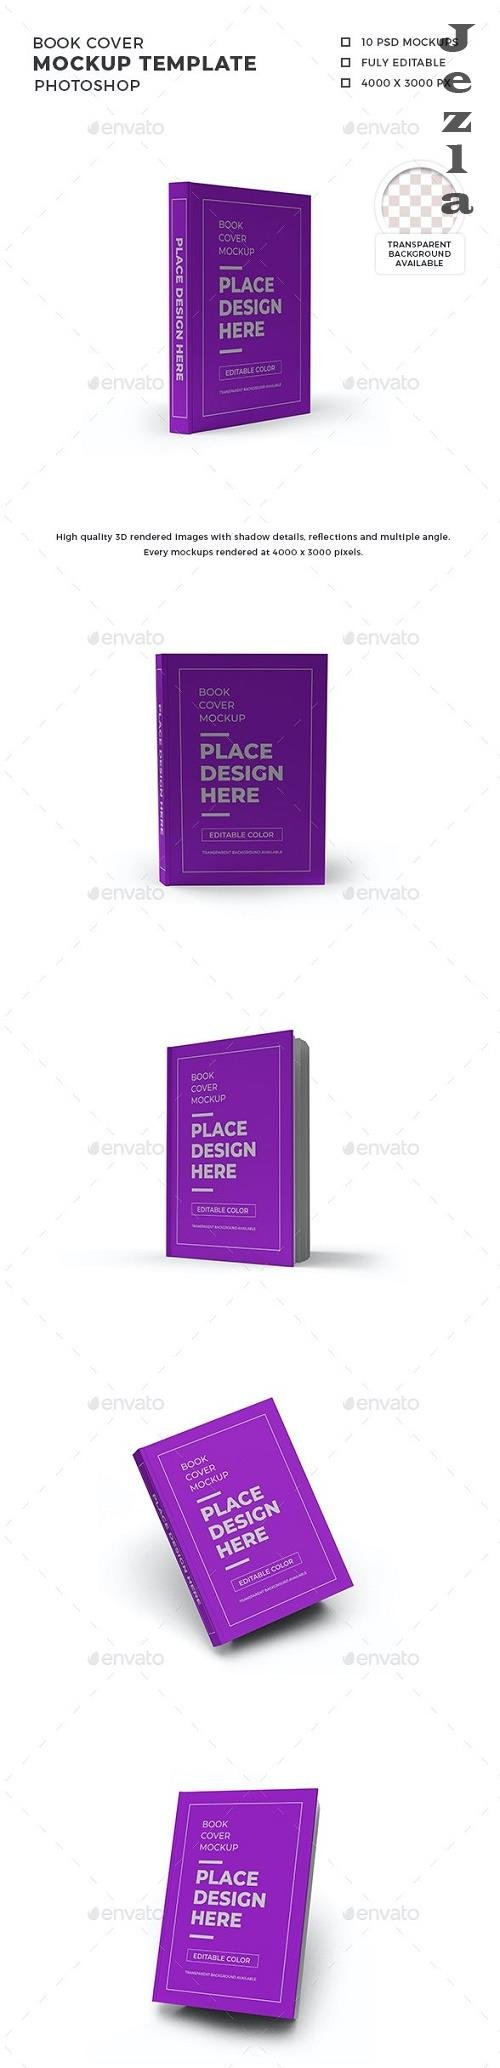 Book Cover Mockup Template Set - 30263942